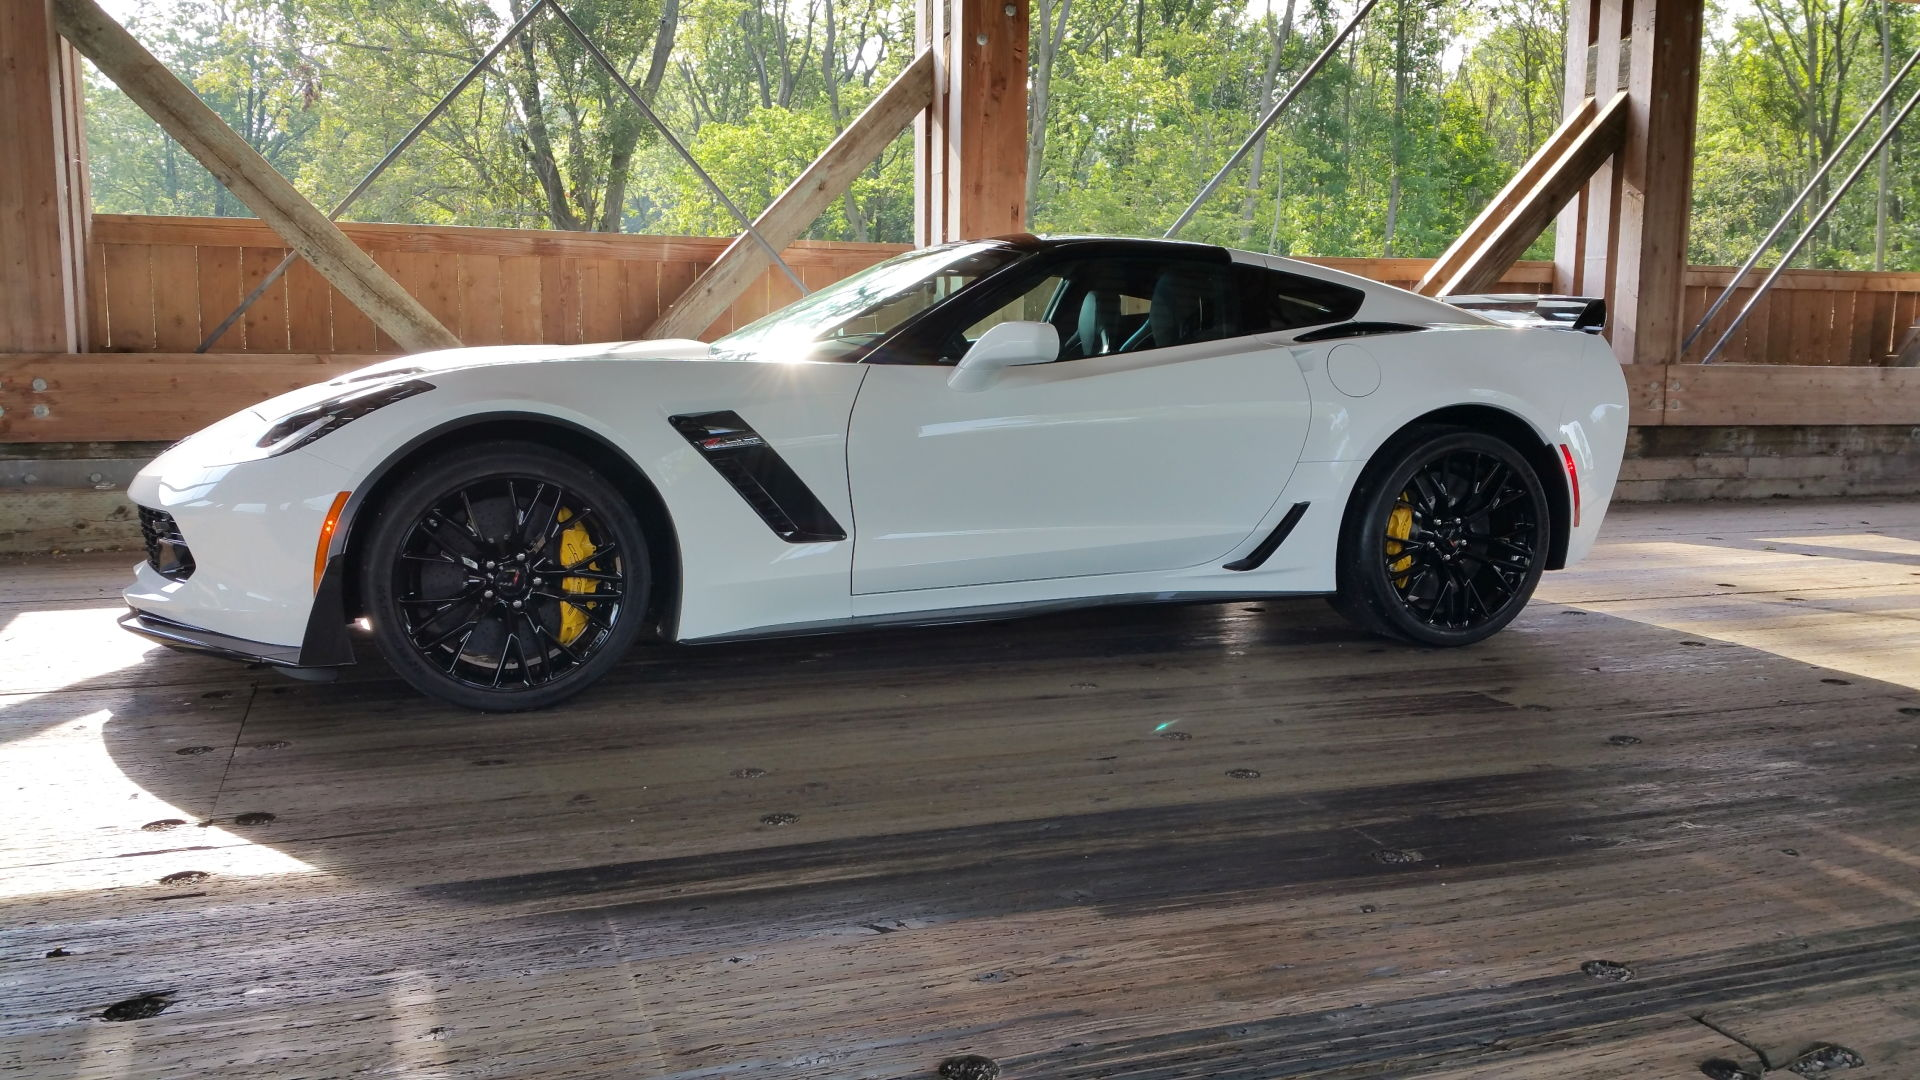 google image search and even here has few aw c7 z06s with these caliperspost up and make google proudi have seen a couple here in the past - Corvette C7 Z06 White